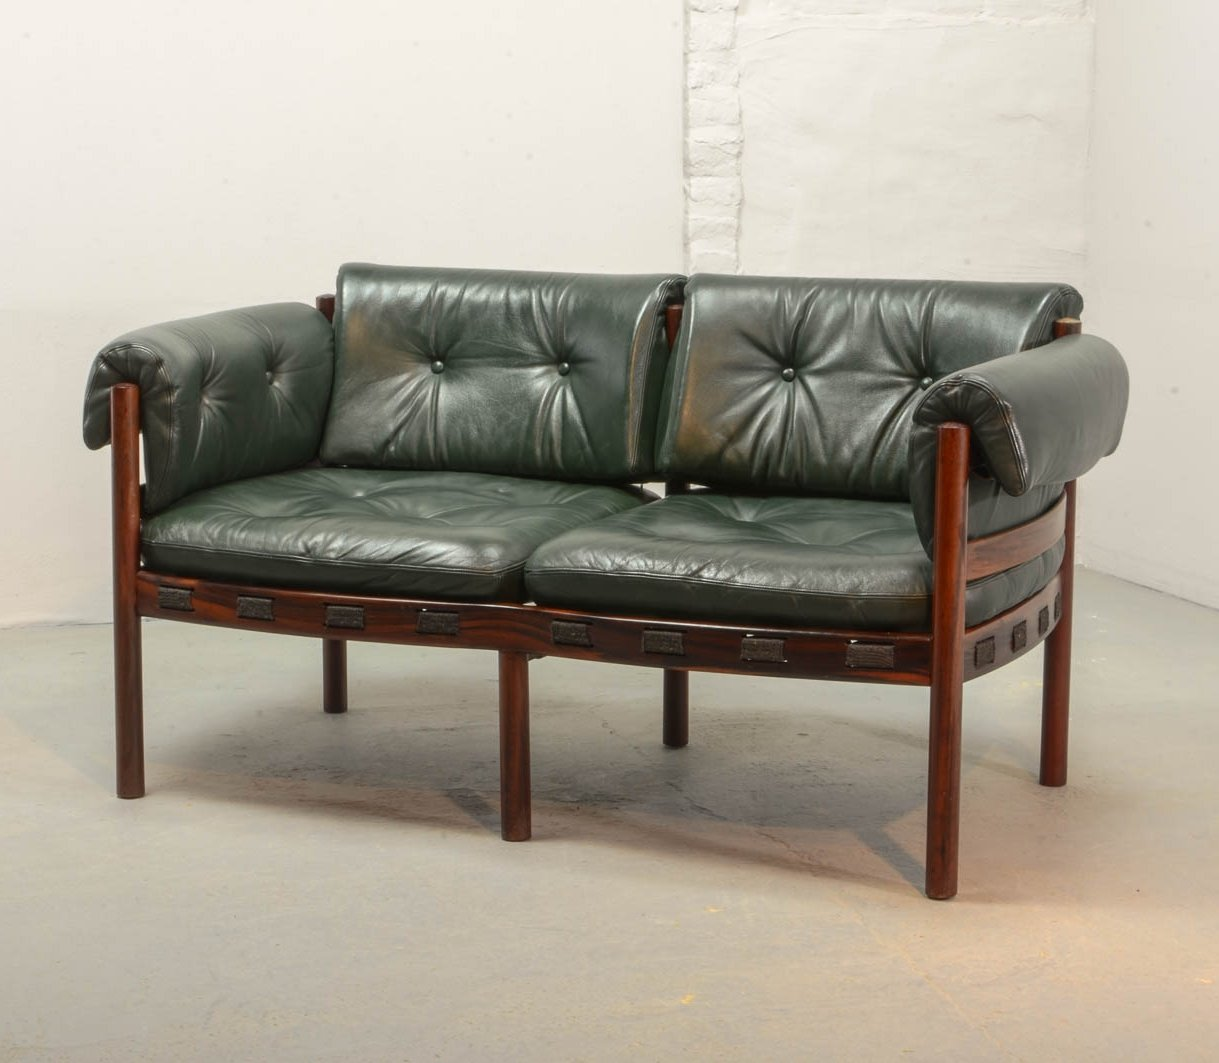 Two seat rosewood green leather sofa by arne norell for coja 1960s